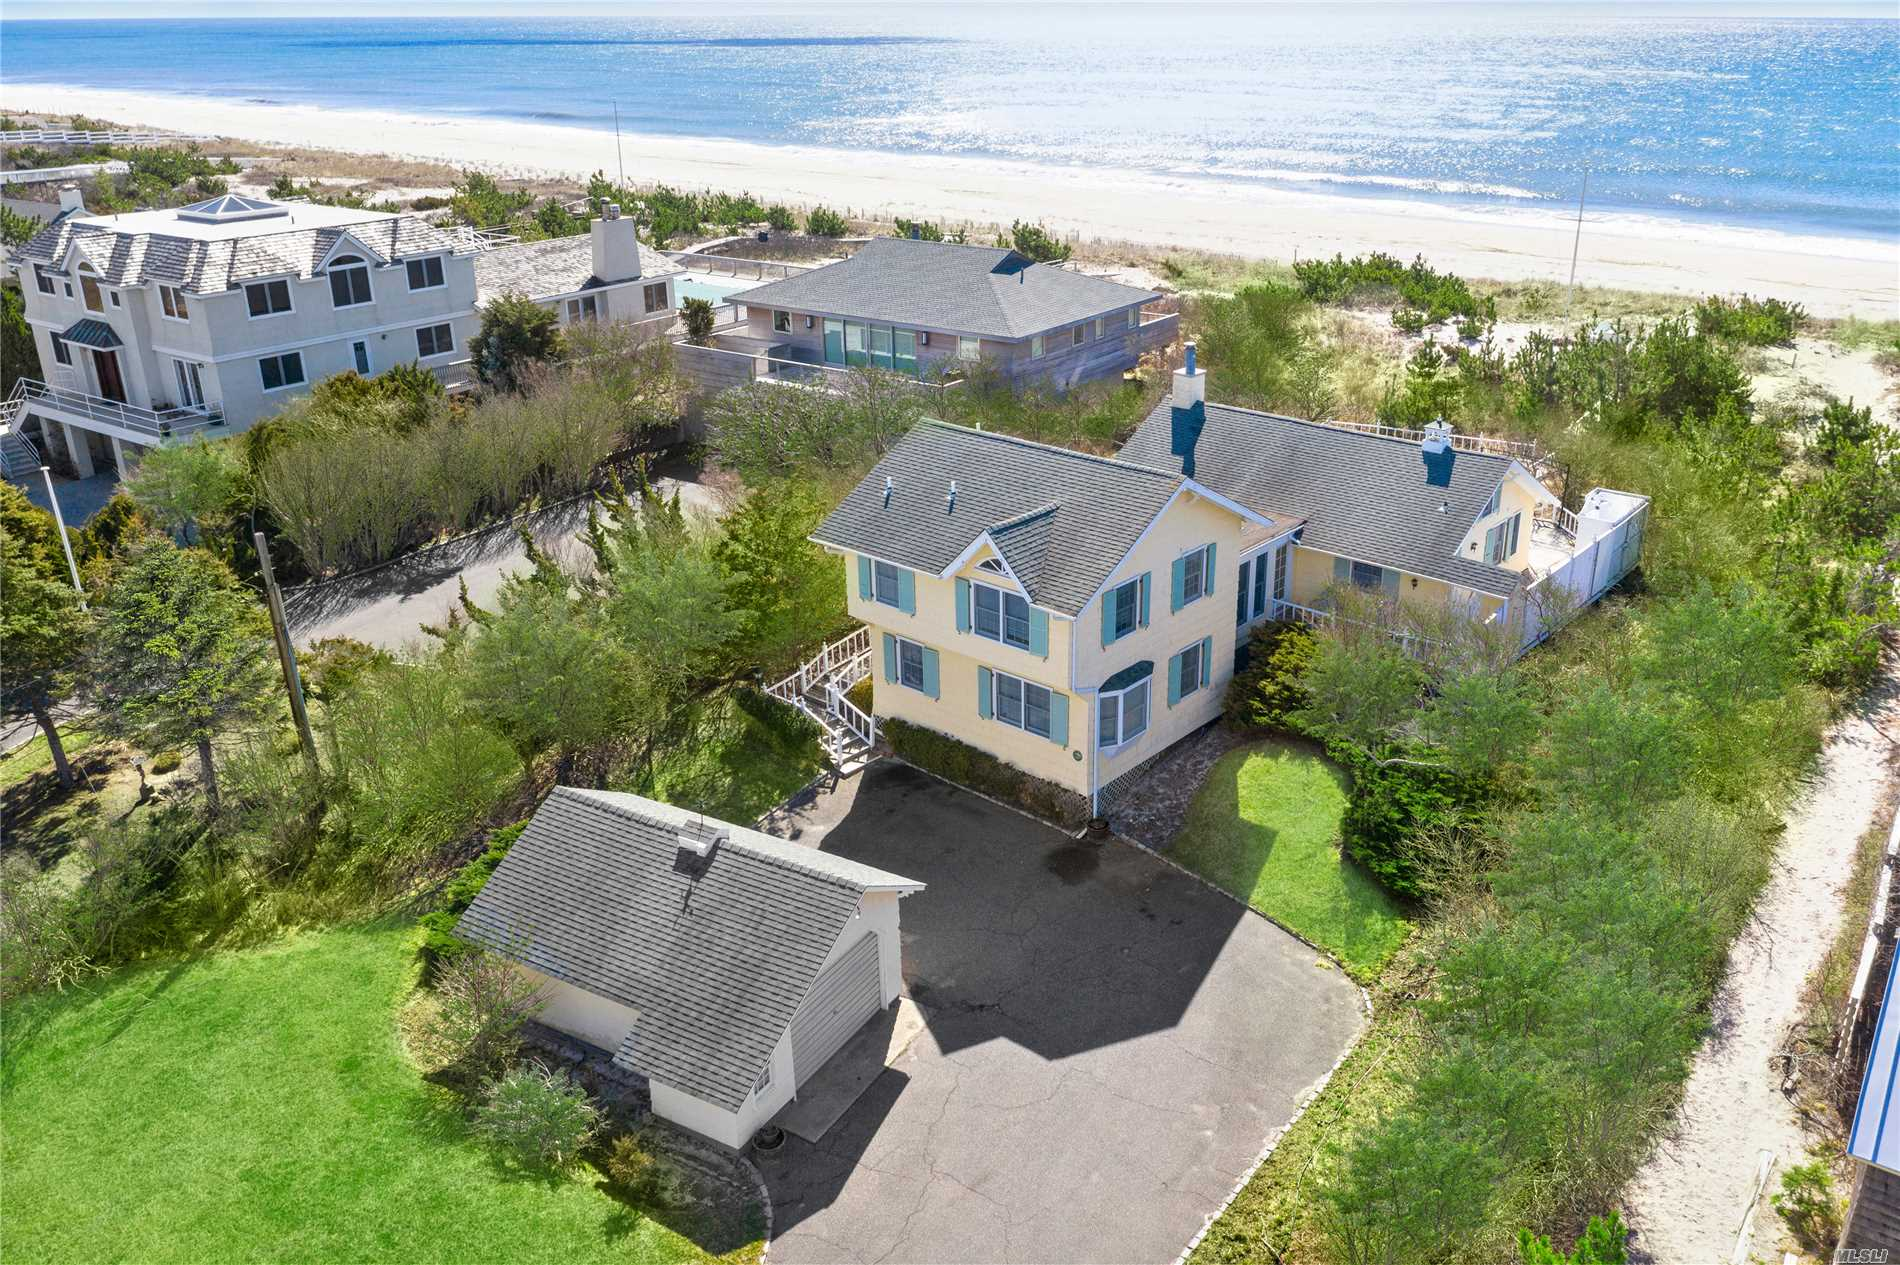 Opportunity is Knocking! Rarely does a classic Quogue oceanfront home come on the market. Savor 100 feet of ocean front on a wide stretch of highly desirable pristine beach conveniently near the Post Ln bridge. The original home was built in 1935 and survived the Hurricane of '38 The cottage was expanded in the 1980's and a beautiful great room with beamed cathedral ceilings and fireplace was added. Enjoy as is, renovate or build your dream home. Room for pool. Low taxes.